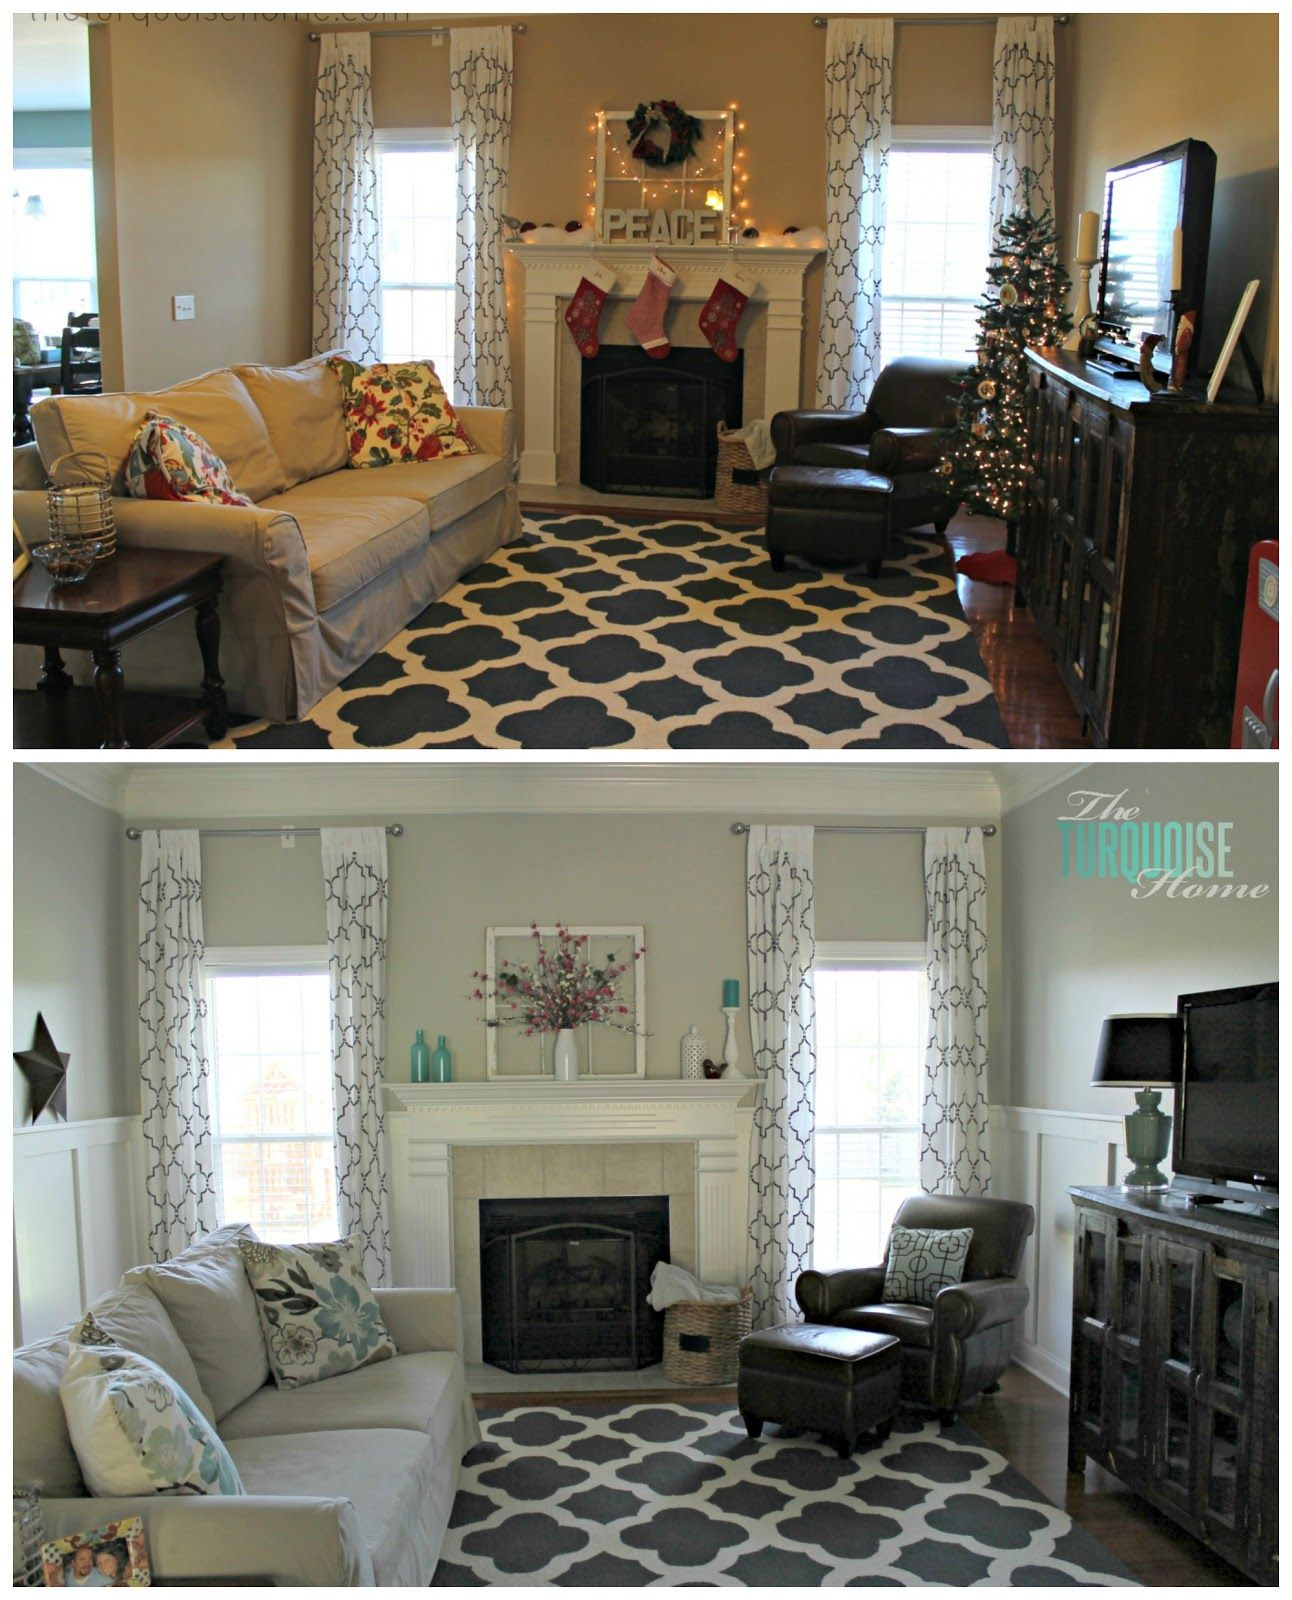 Room Reveal Purple And Grey Living Room: Living Room Makeover - Part 7: Final Reveal